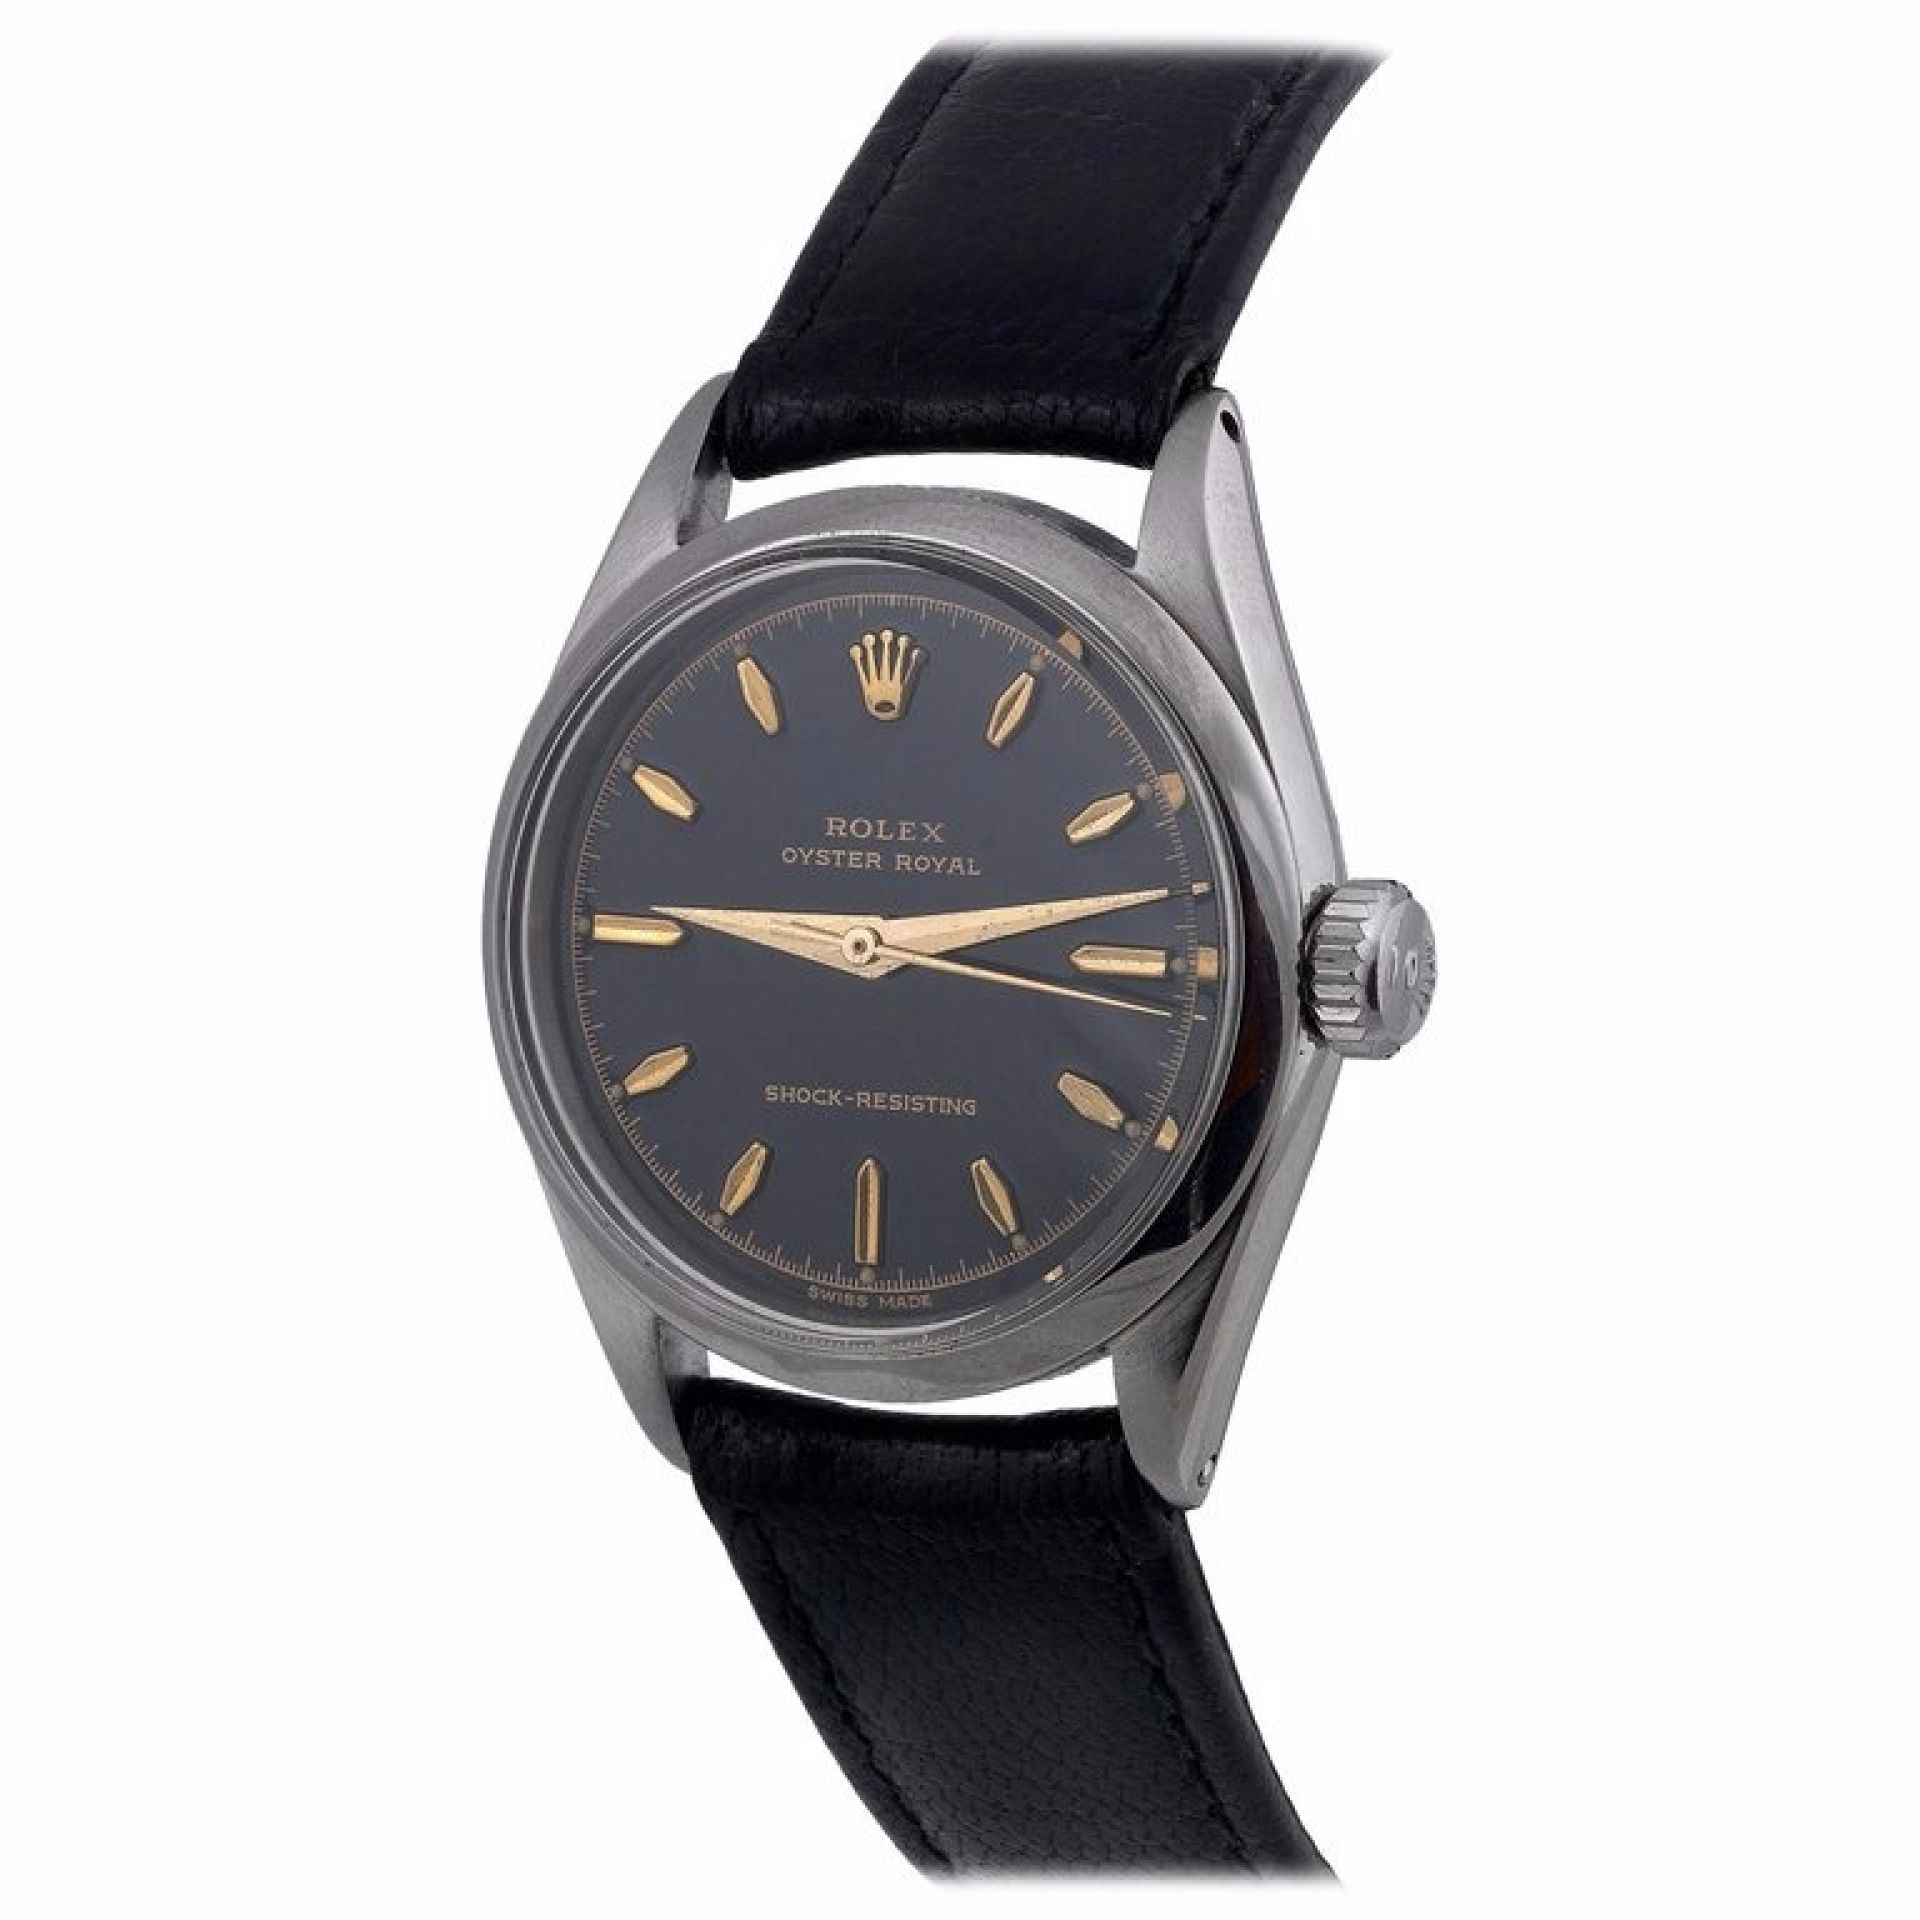 Rolex Oyster Royal Stainless Steel, circa 1956